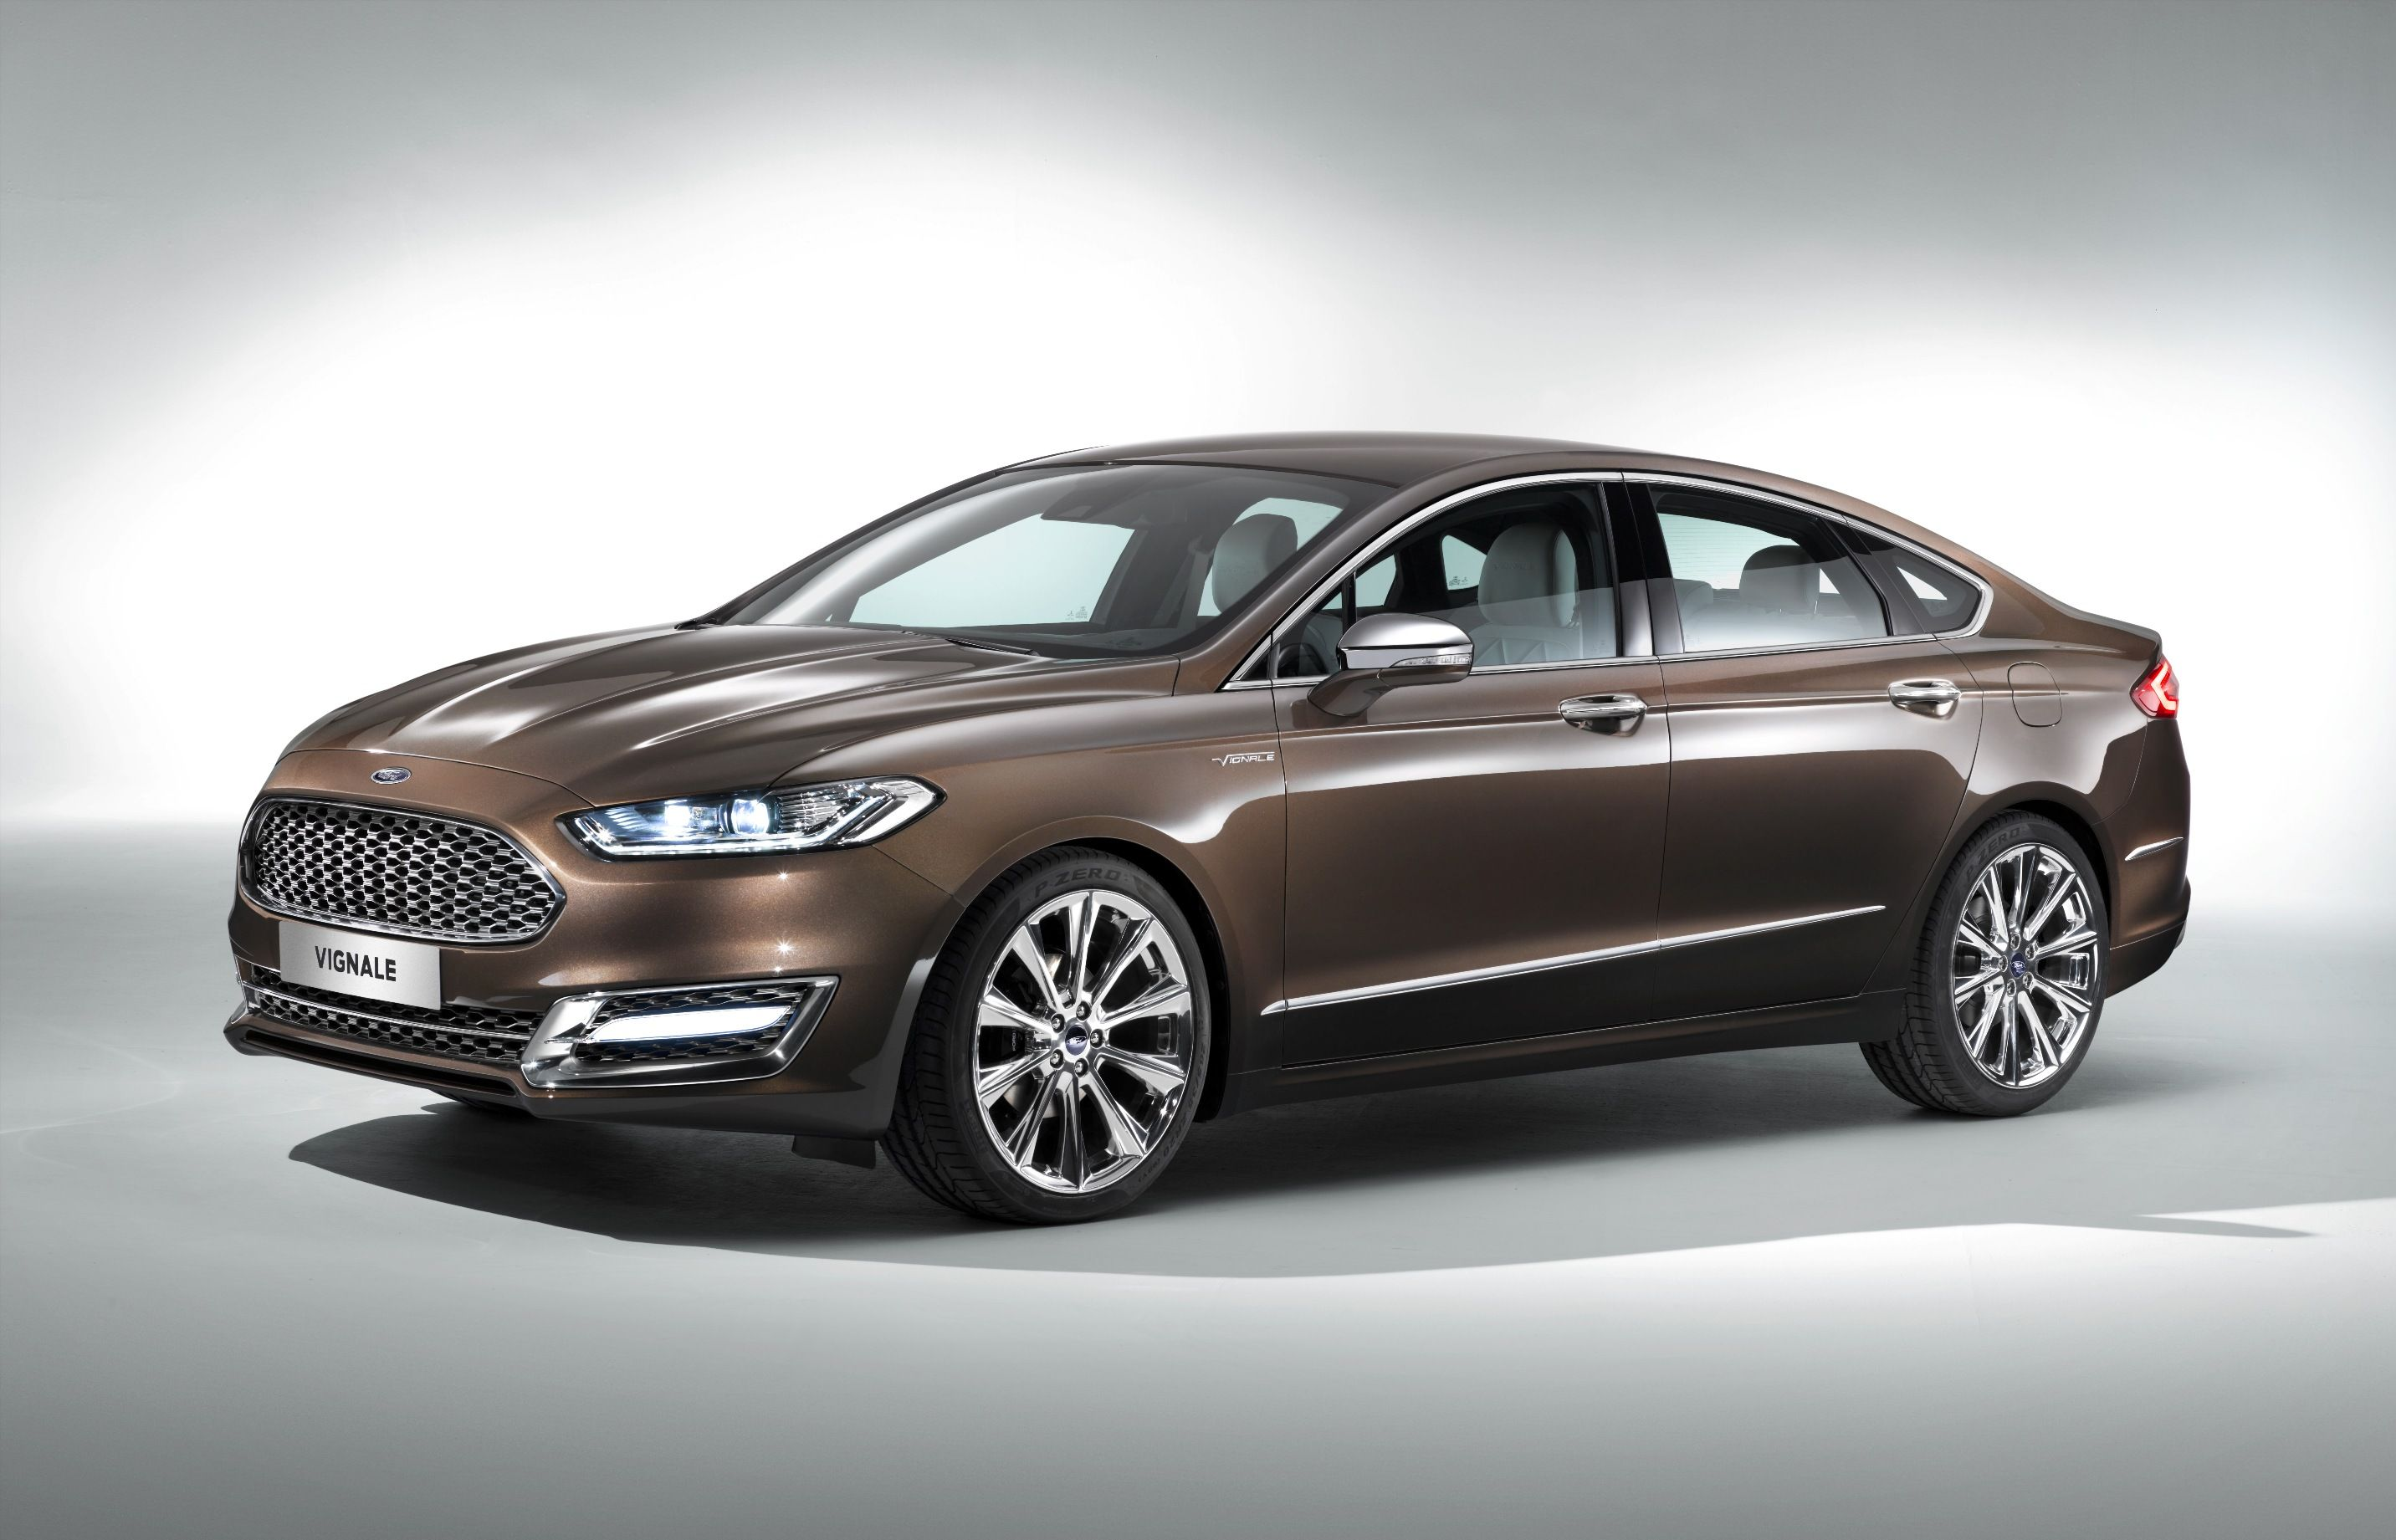 2014 ford mondeo vignale concept revealed before iaa and frankfurt motor show 2013 the vignale trim should also make an appearance on the fusion s max